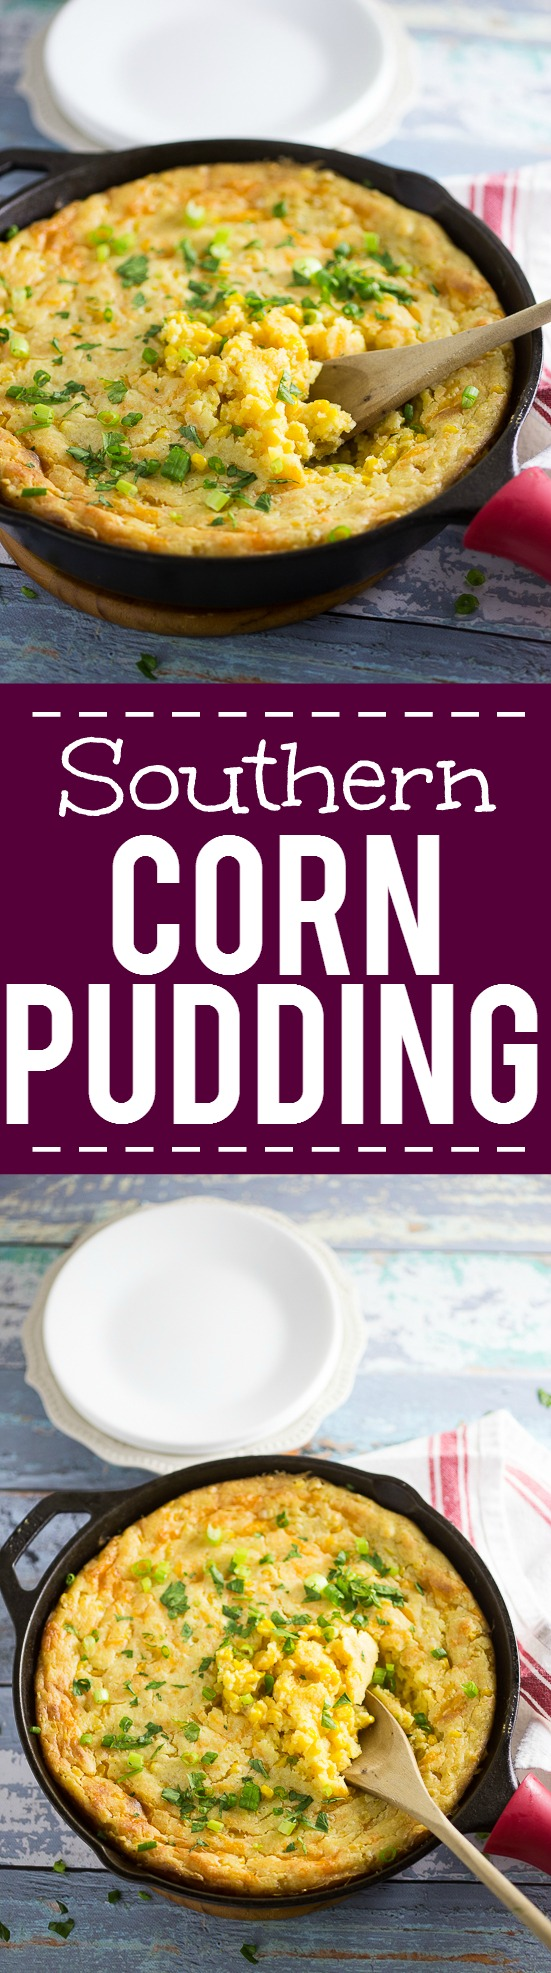 Oven Baked Southern Corn Pudding Recipe -Use this classic Southern Corn Pudding recipe to whip some delicious, cozy comfort food that's the perfect side dish with your favorite meat and potatoes. Also great for potlucks and holidays! This is such an easy and delicious corn side dish recipe! You can't go wrong with spoon bread!